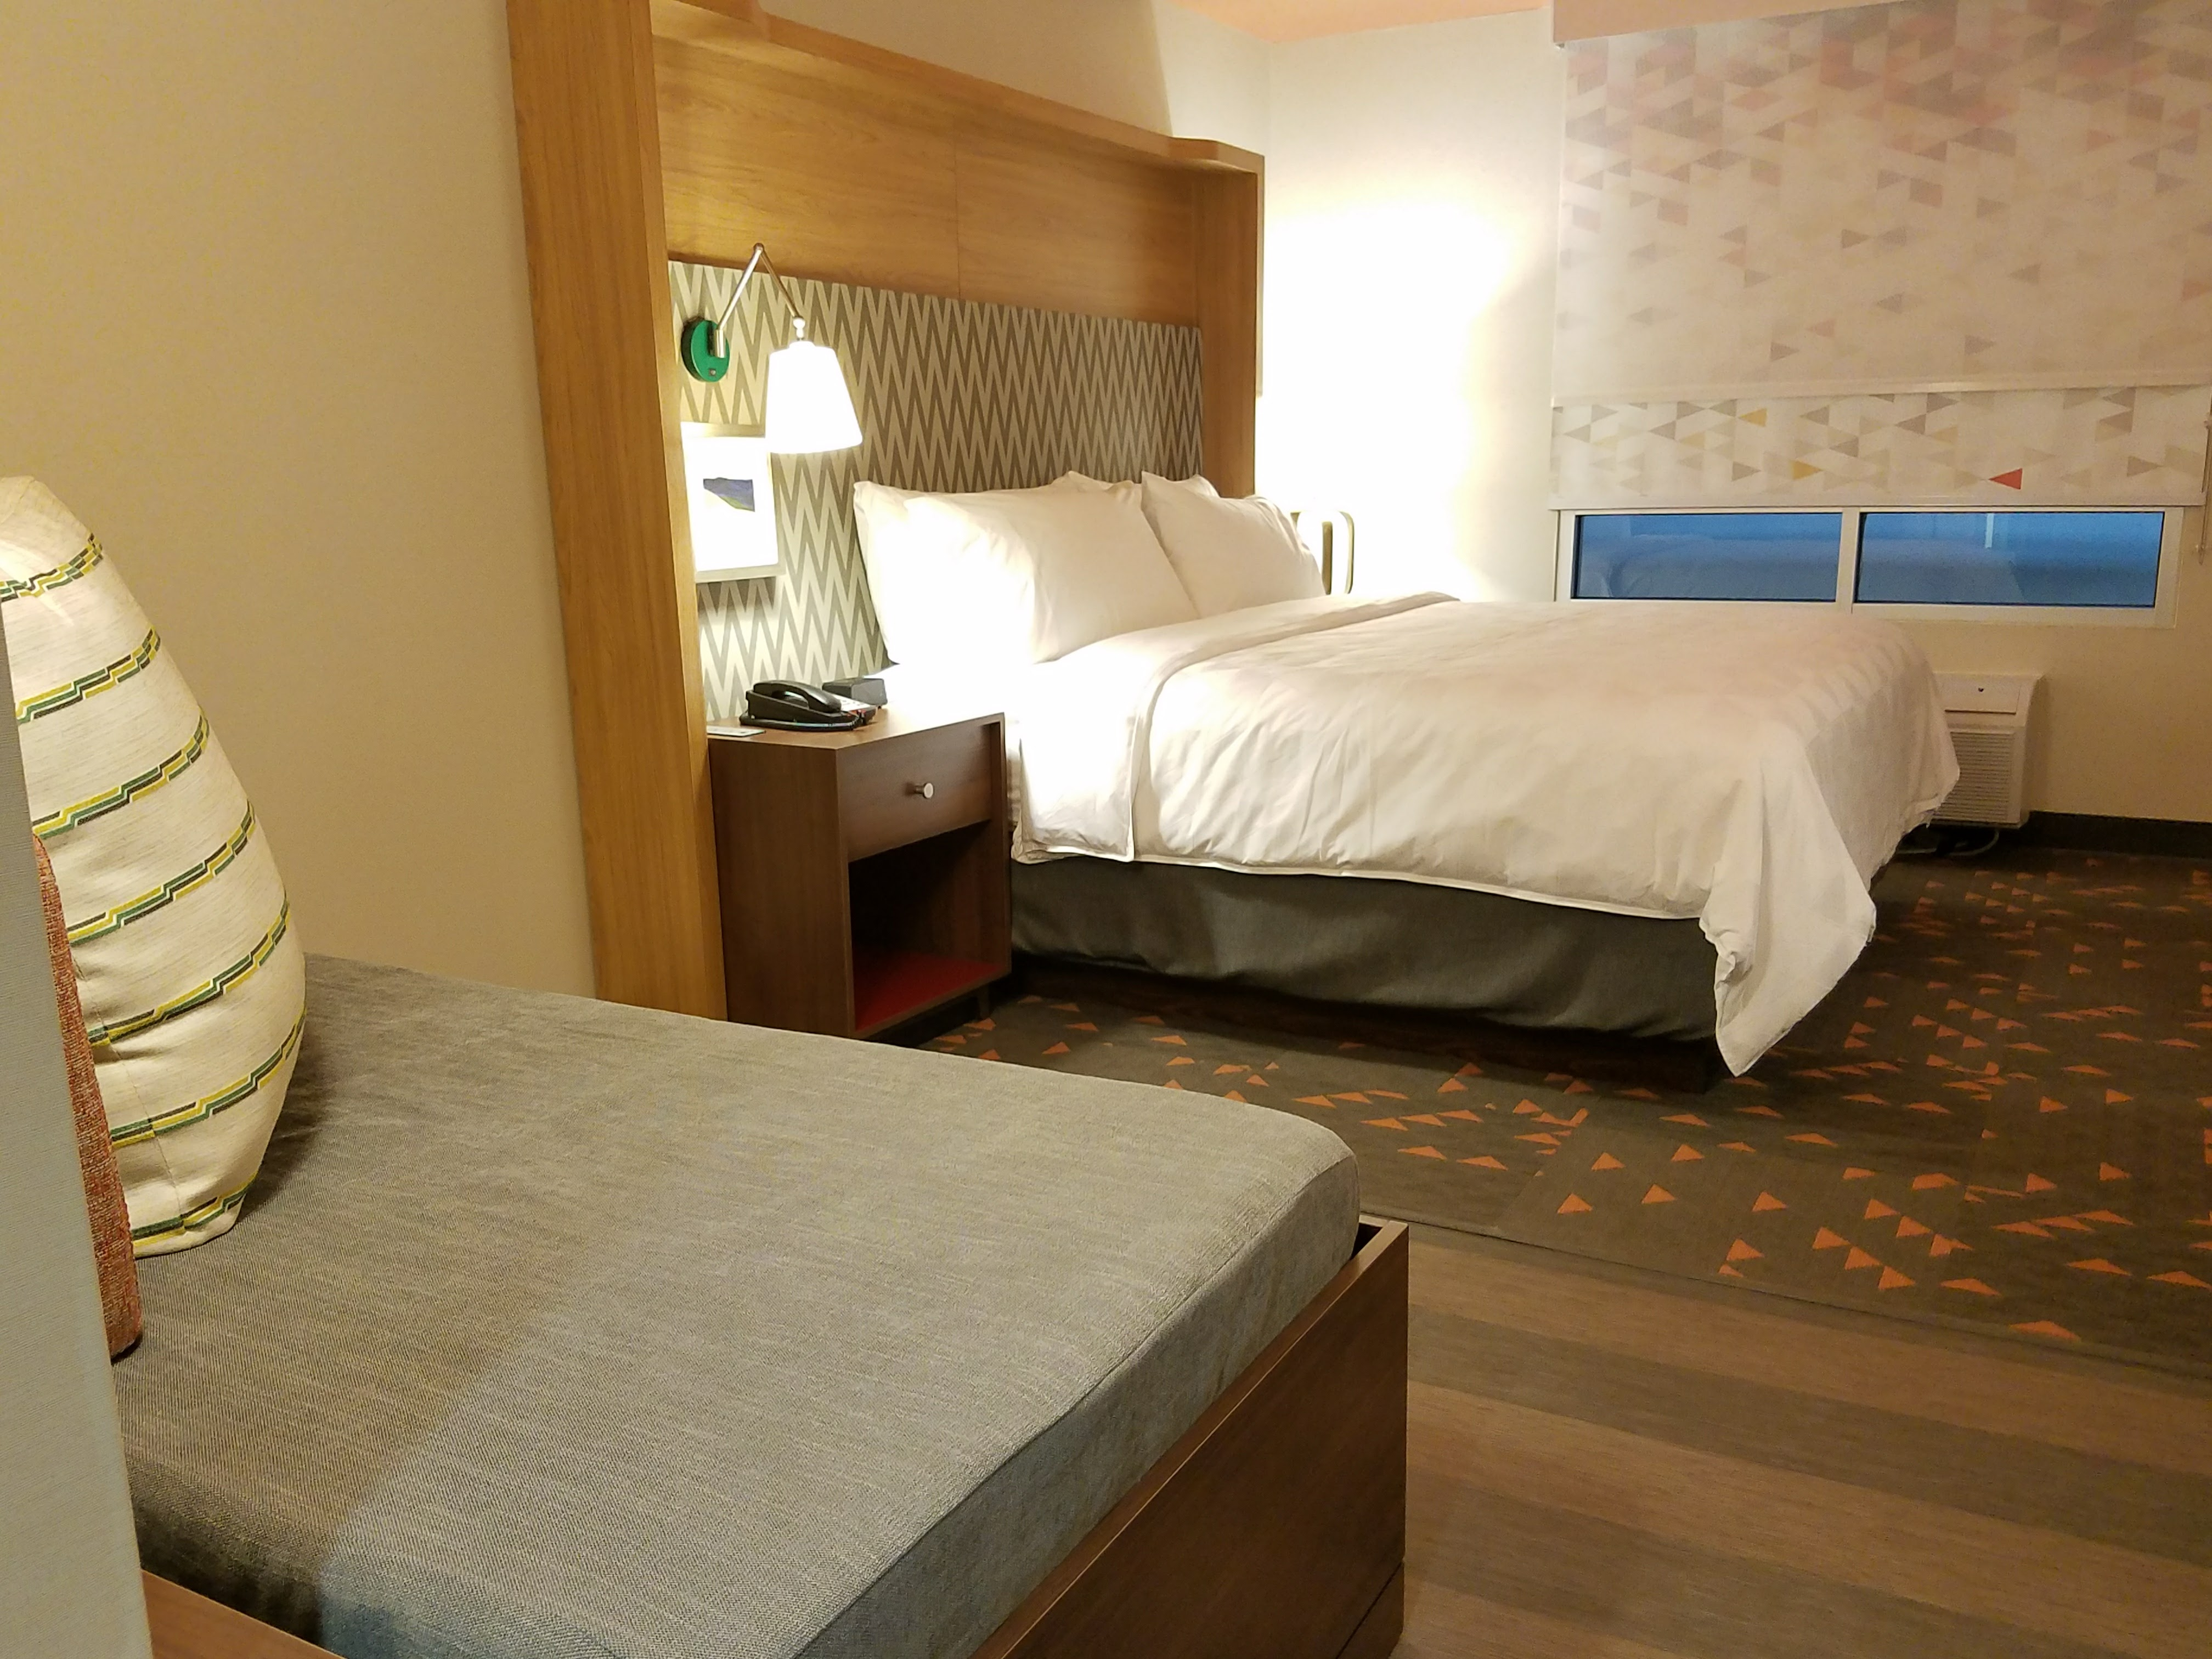 IHG's Holiday Inn H4 prototype has 5 points throughout the guestroom where guests can charge devices.